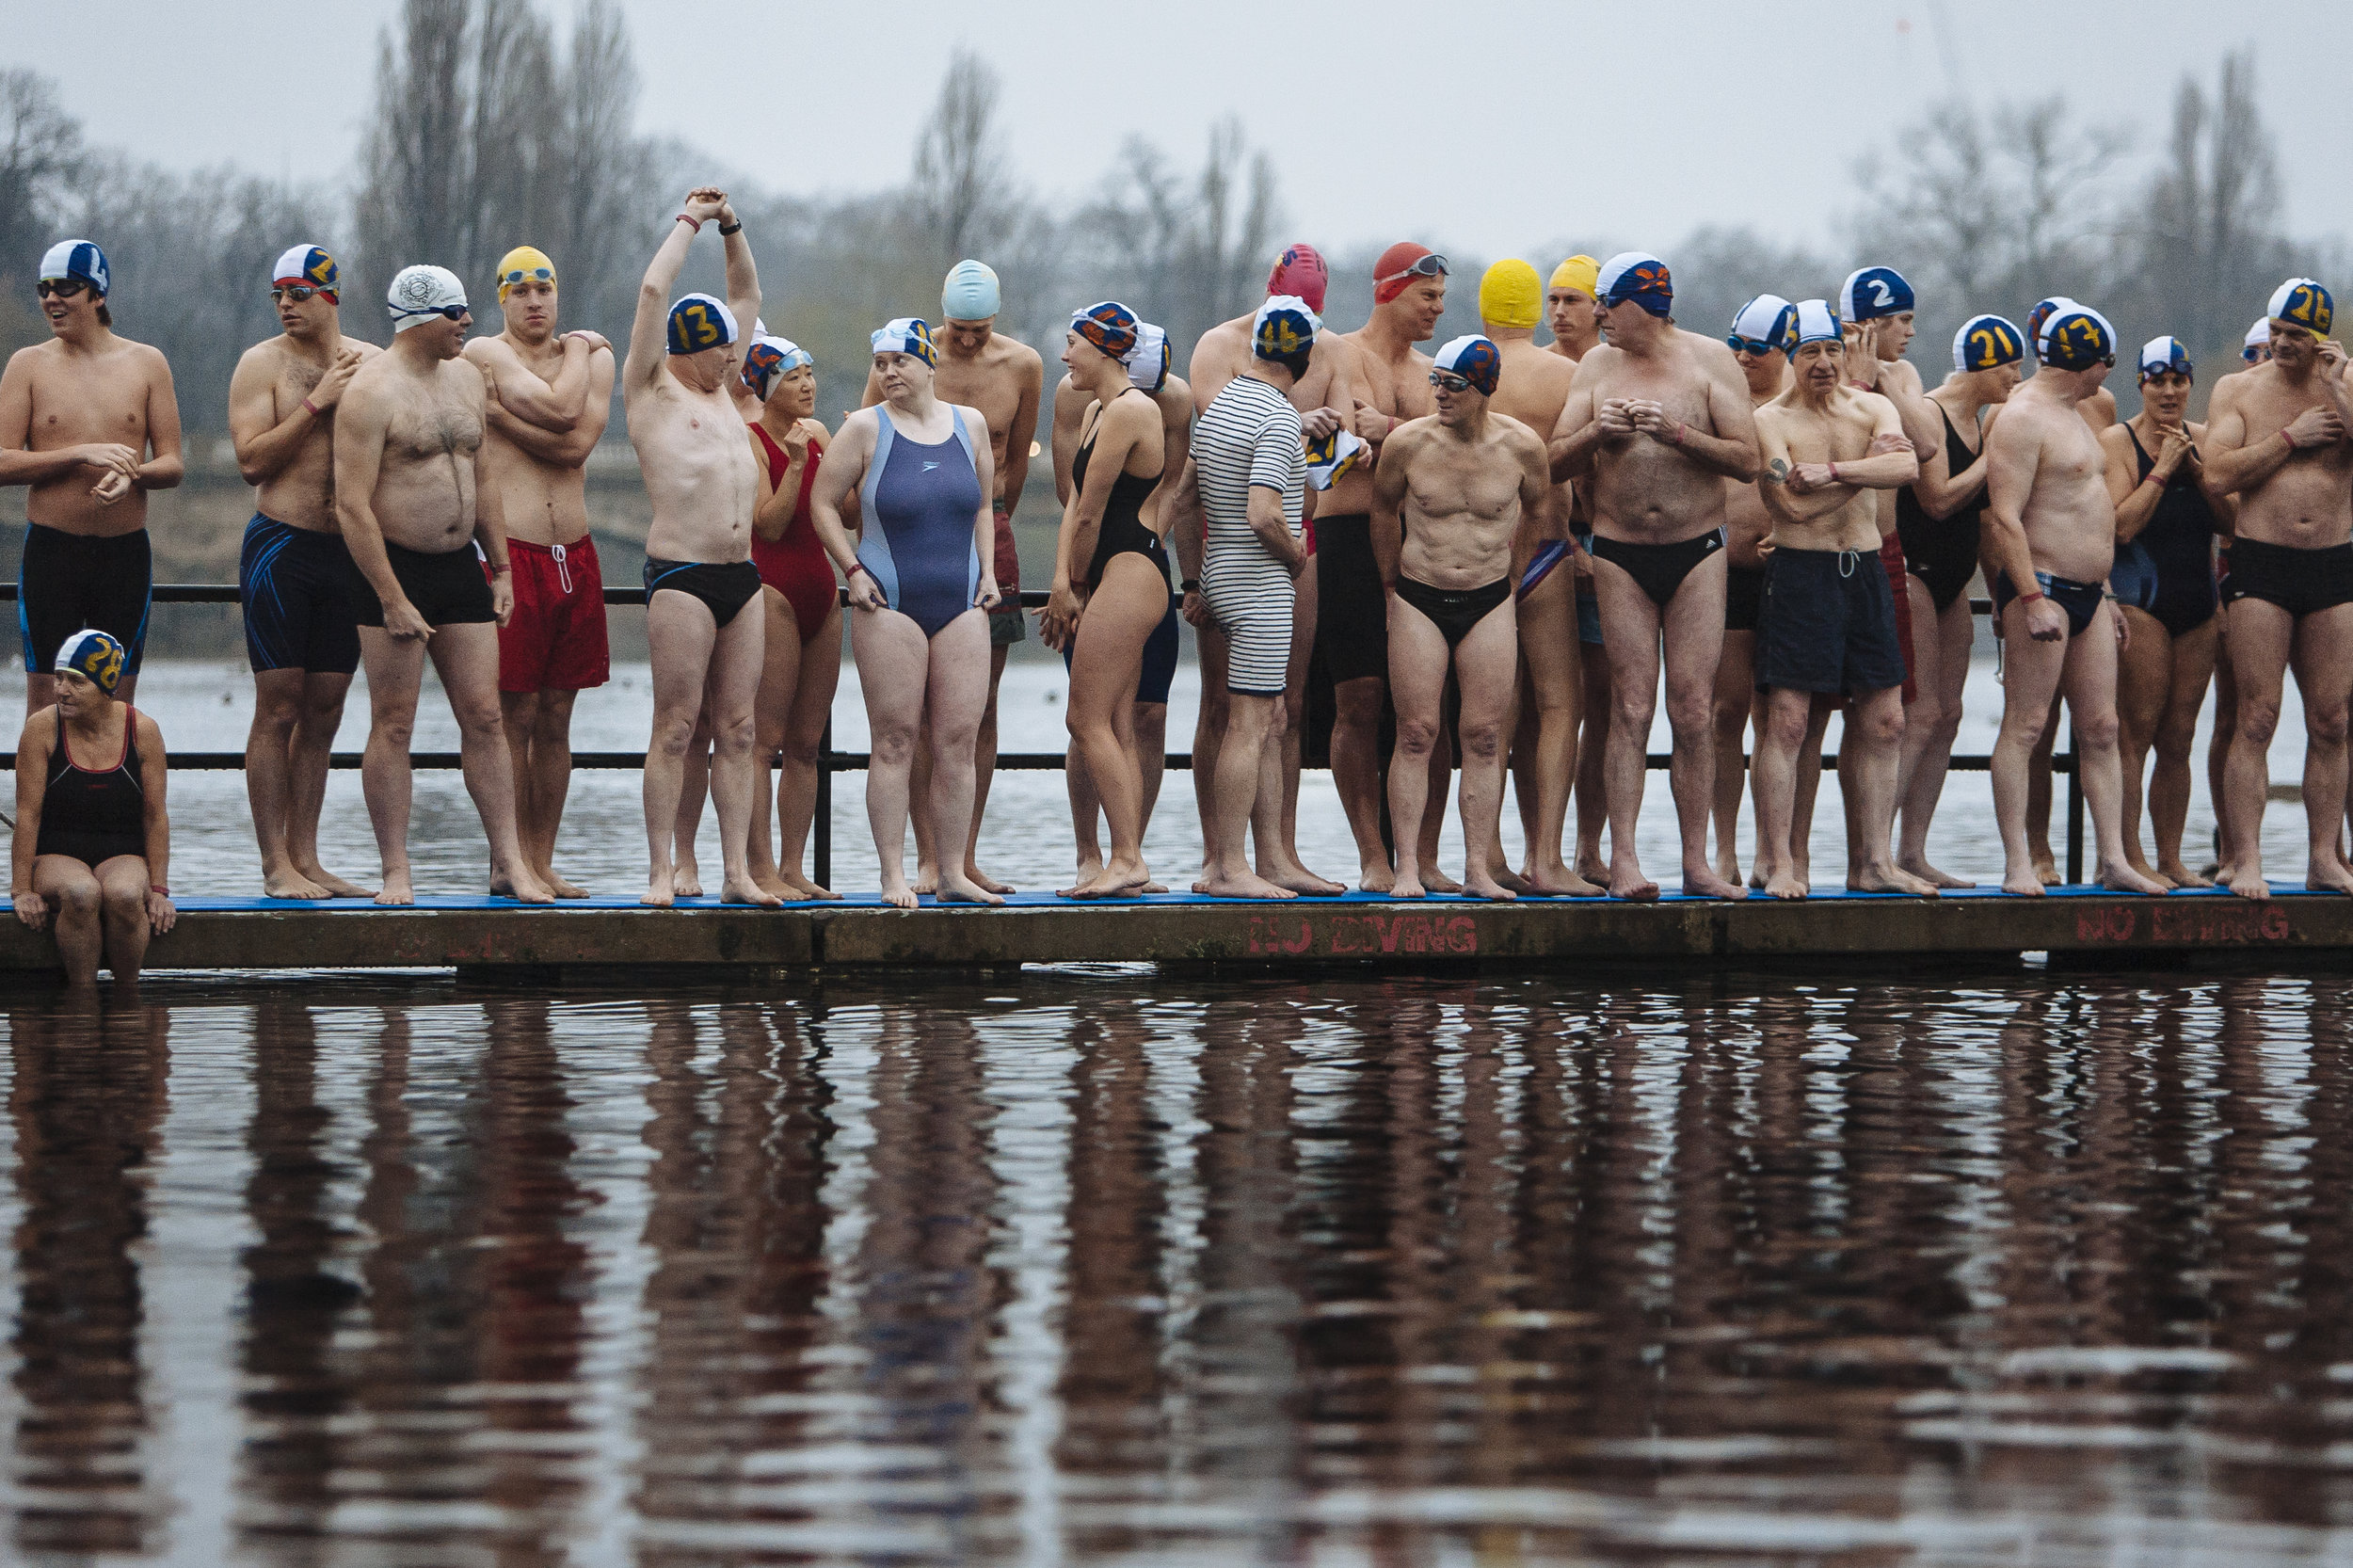 Members of the Serpentine swimming club line up for the traditional Christmas day swimming race in Hyde Park's Serpentine Lake, London, Tuesday, Dec. 25, 2007.